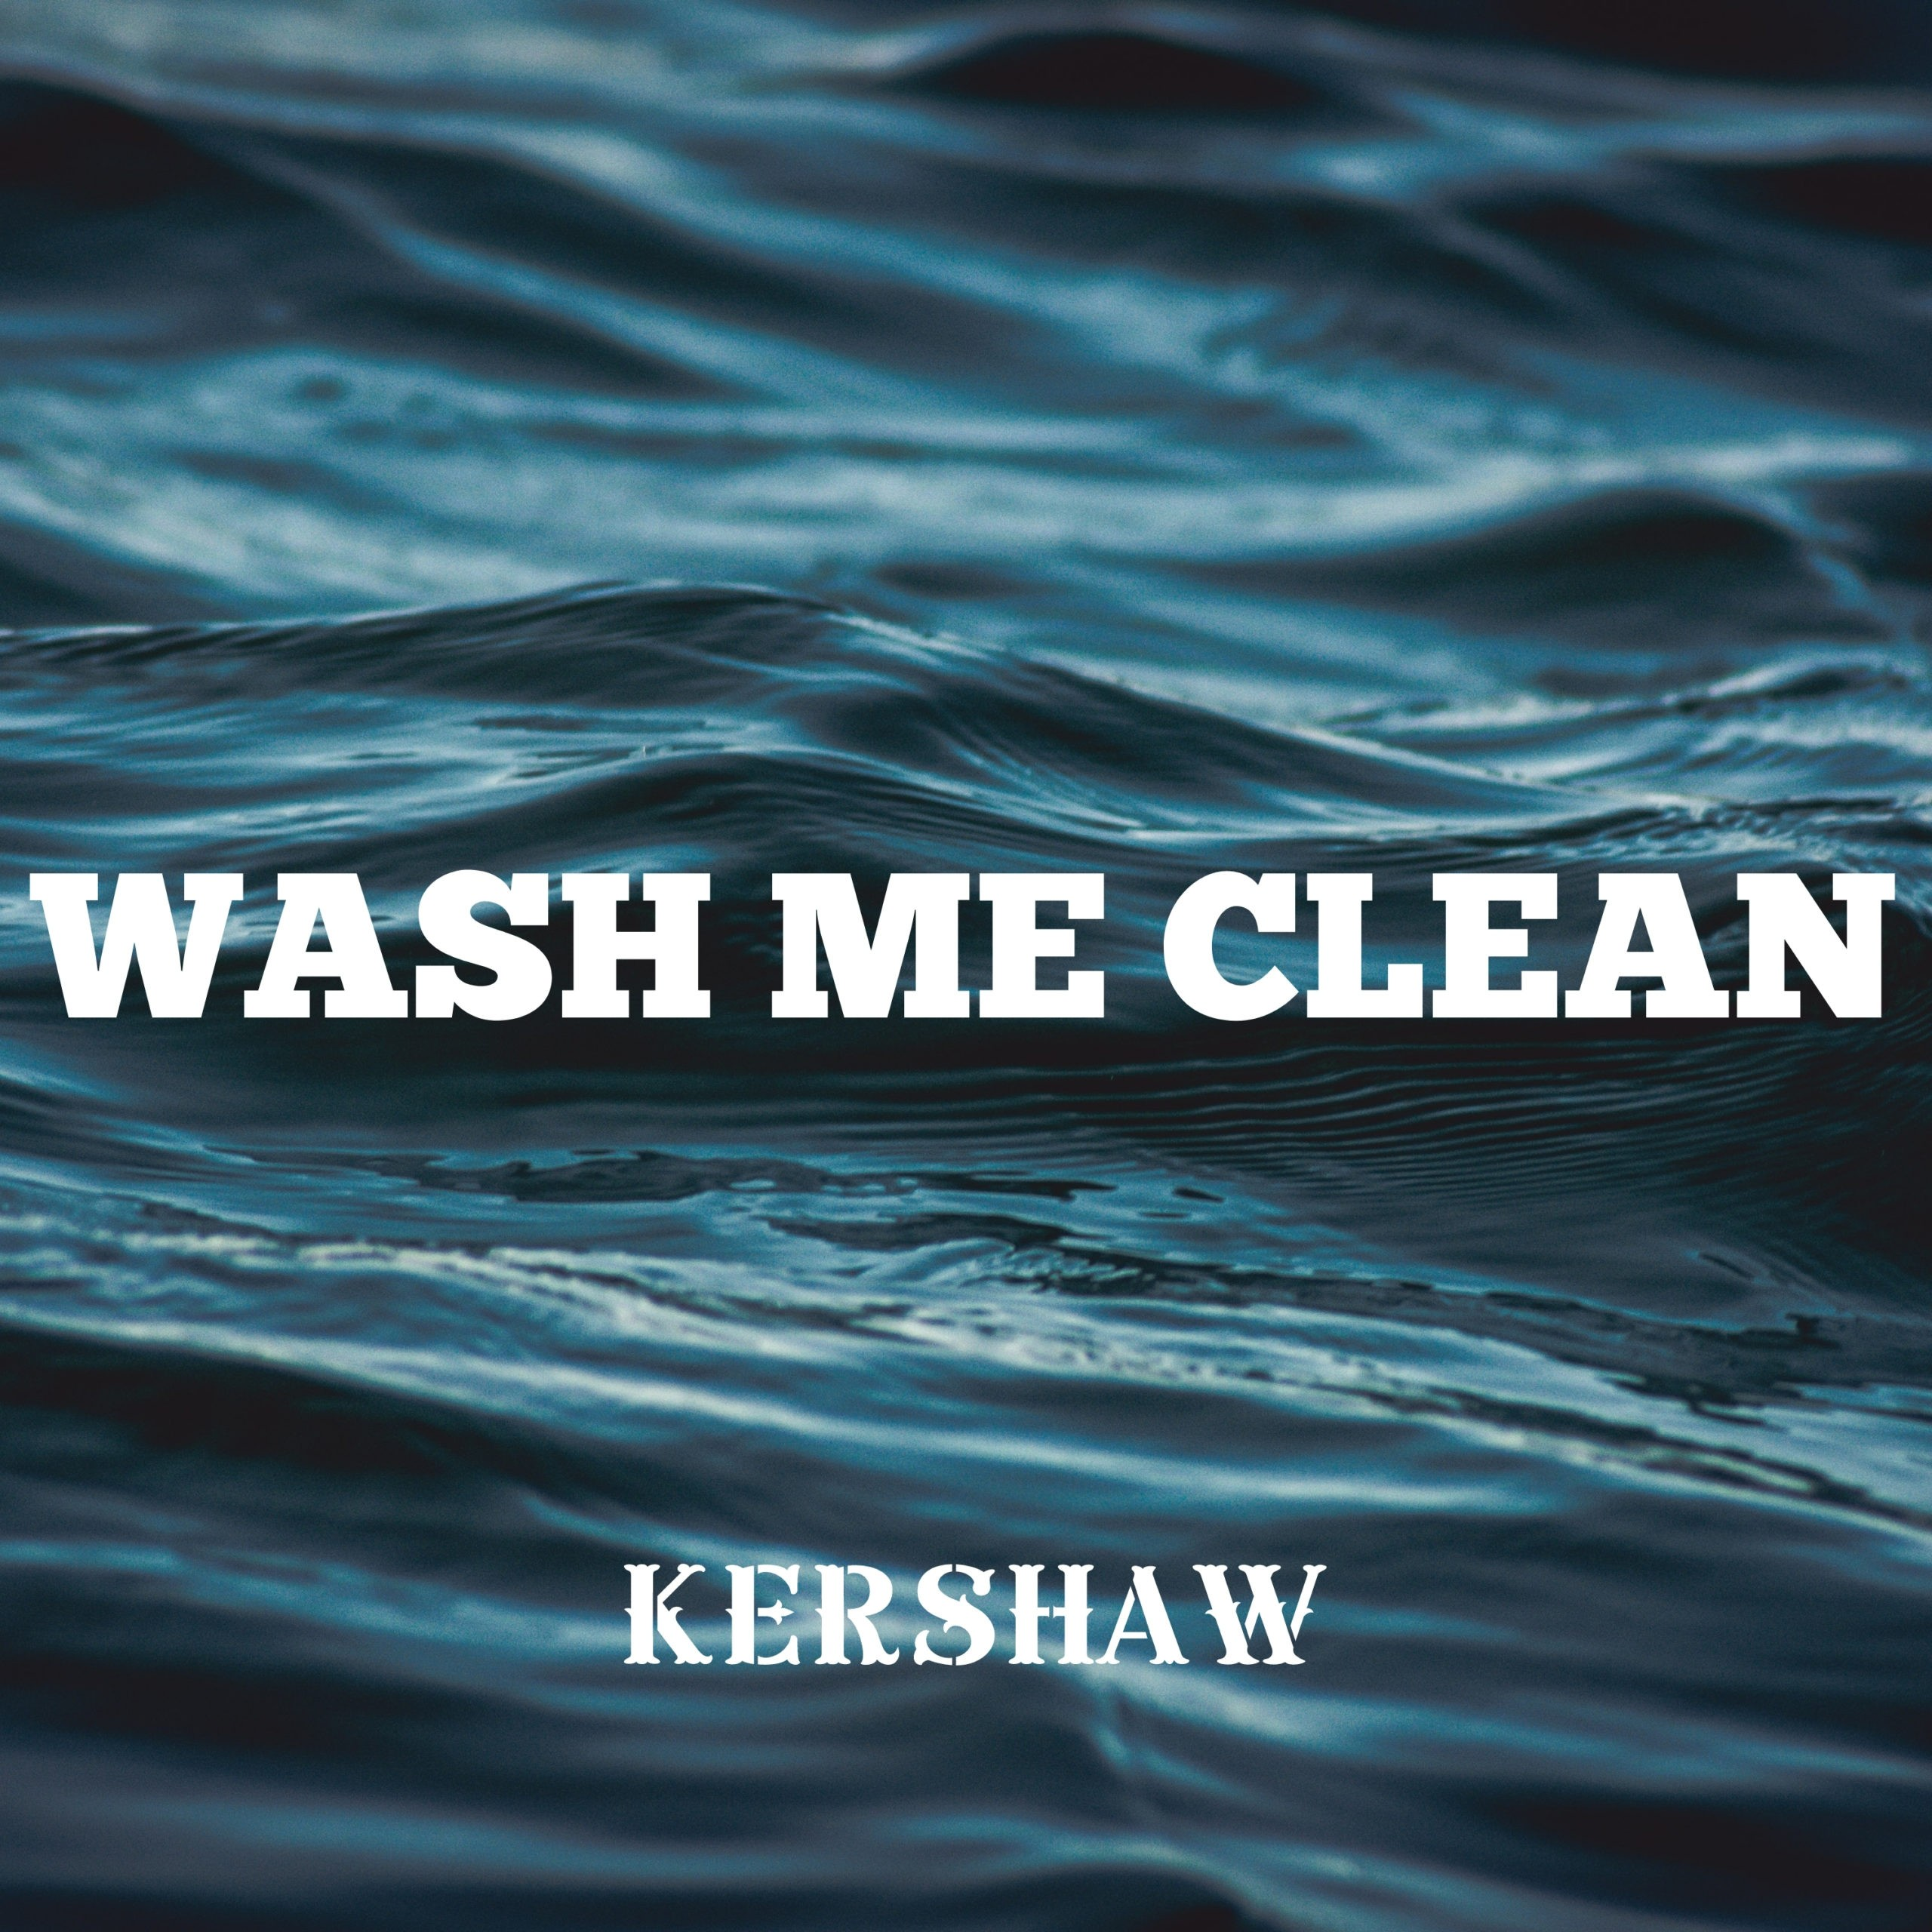 KERSHAW RELEASES 'WASH ME CLEAN' LYRIC VIDEO TODAY